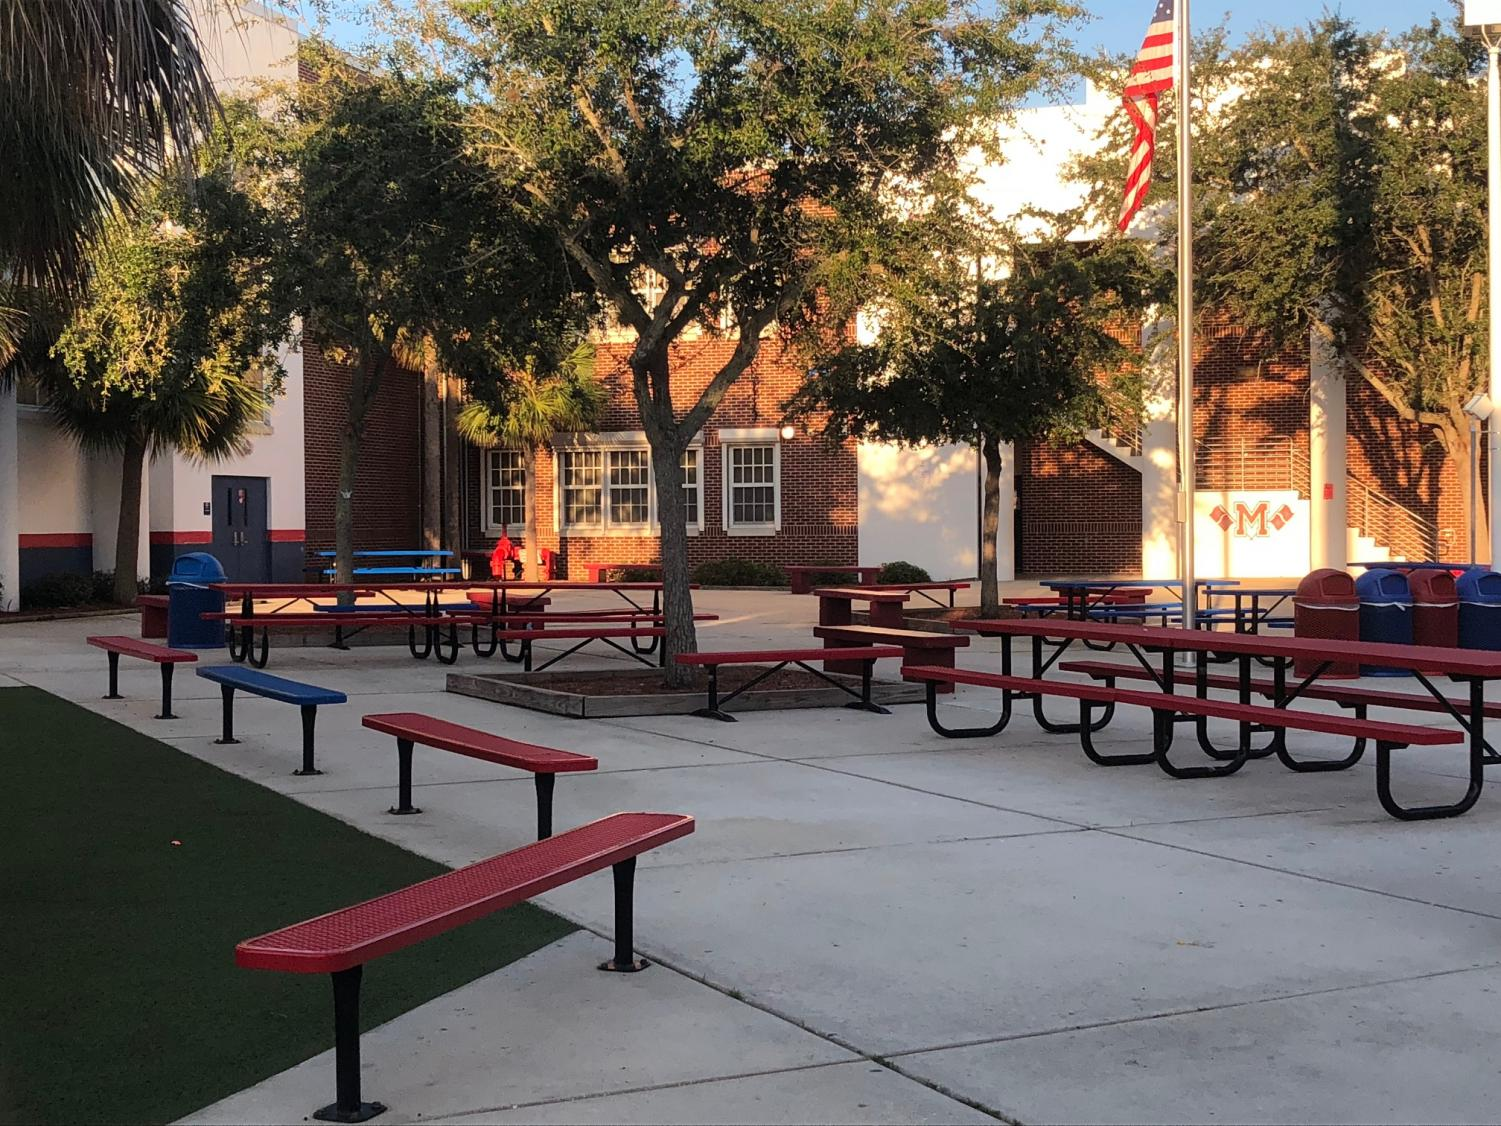 The morning sun shines on the Manatee High School courtyard. Photo Credit: Ethan Clark